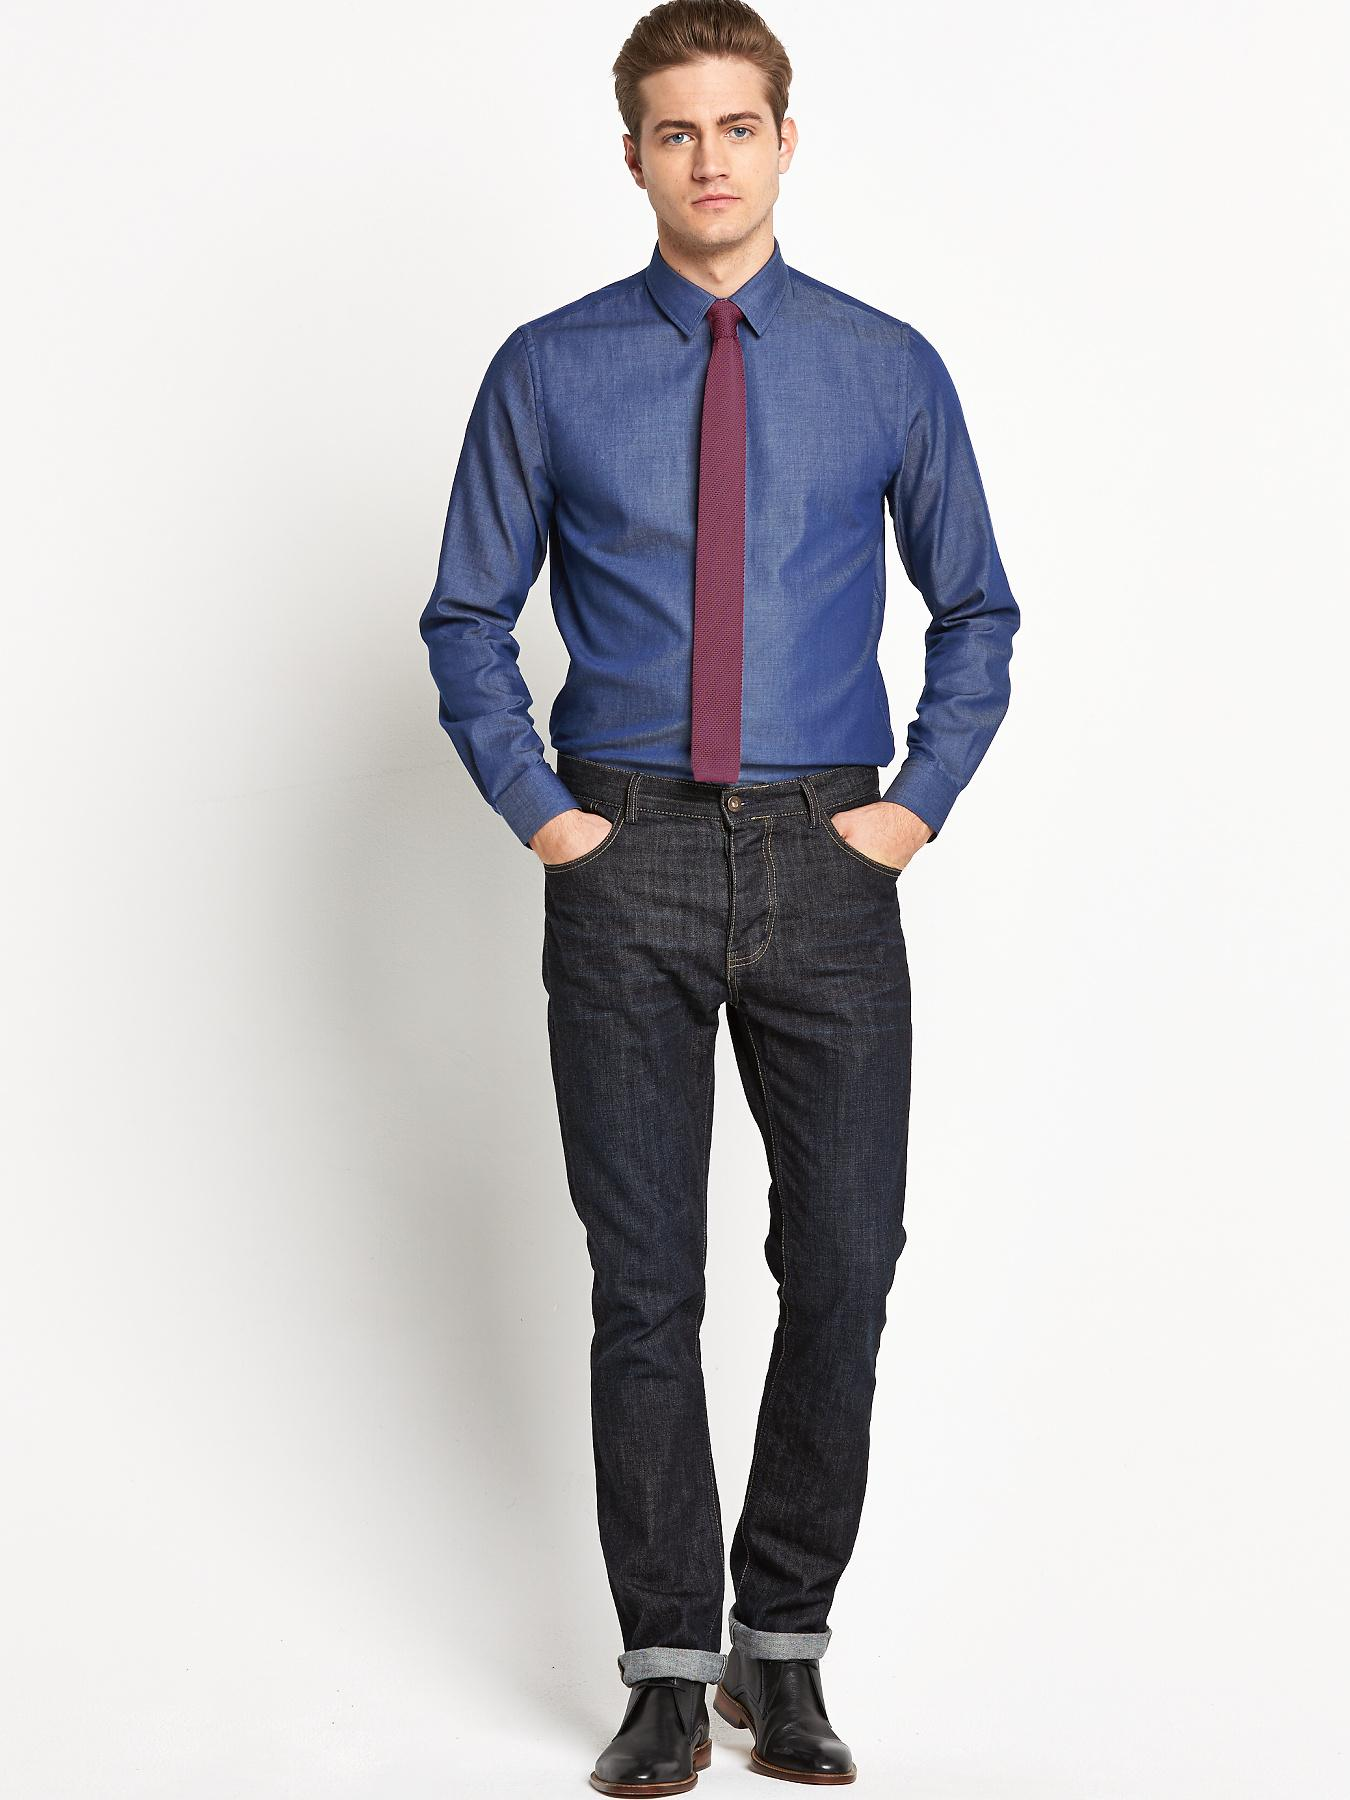 Mens Shirt And Tie | Is Shirt